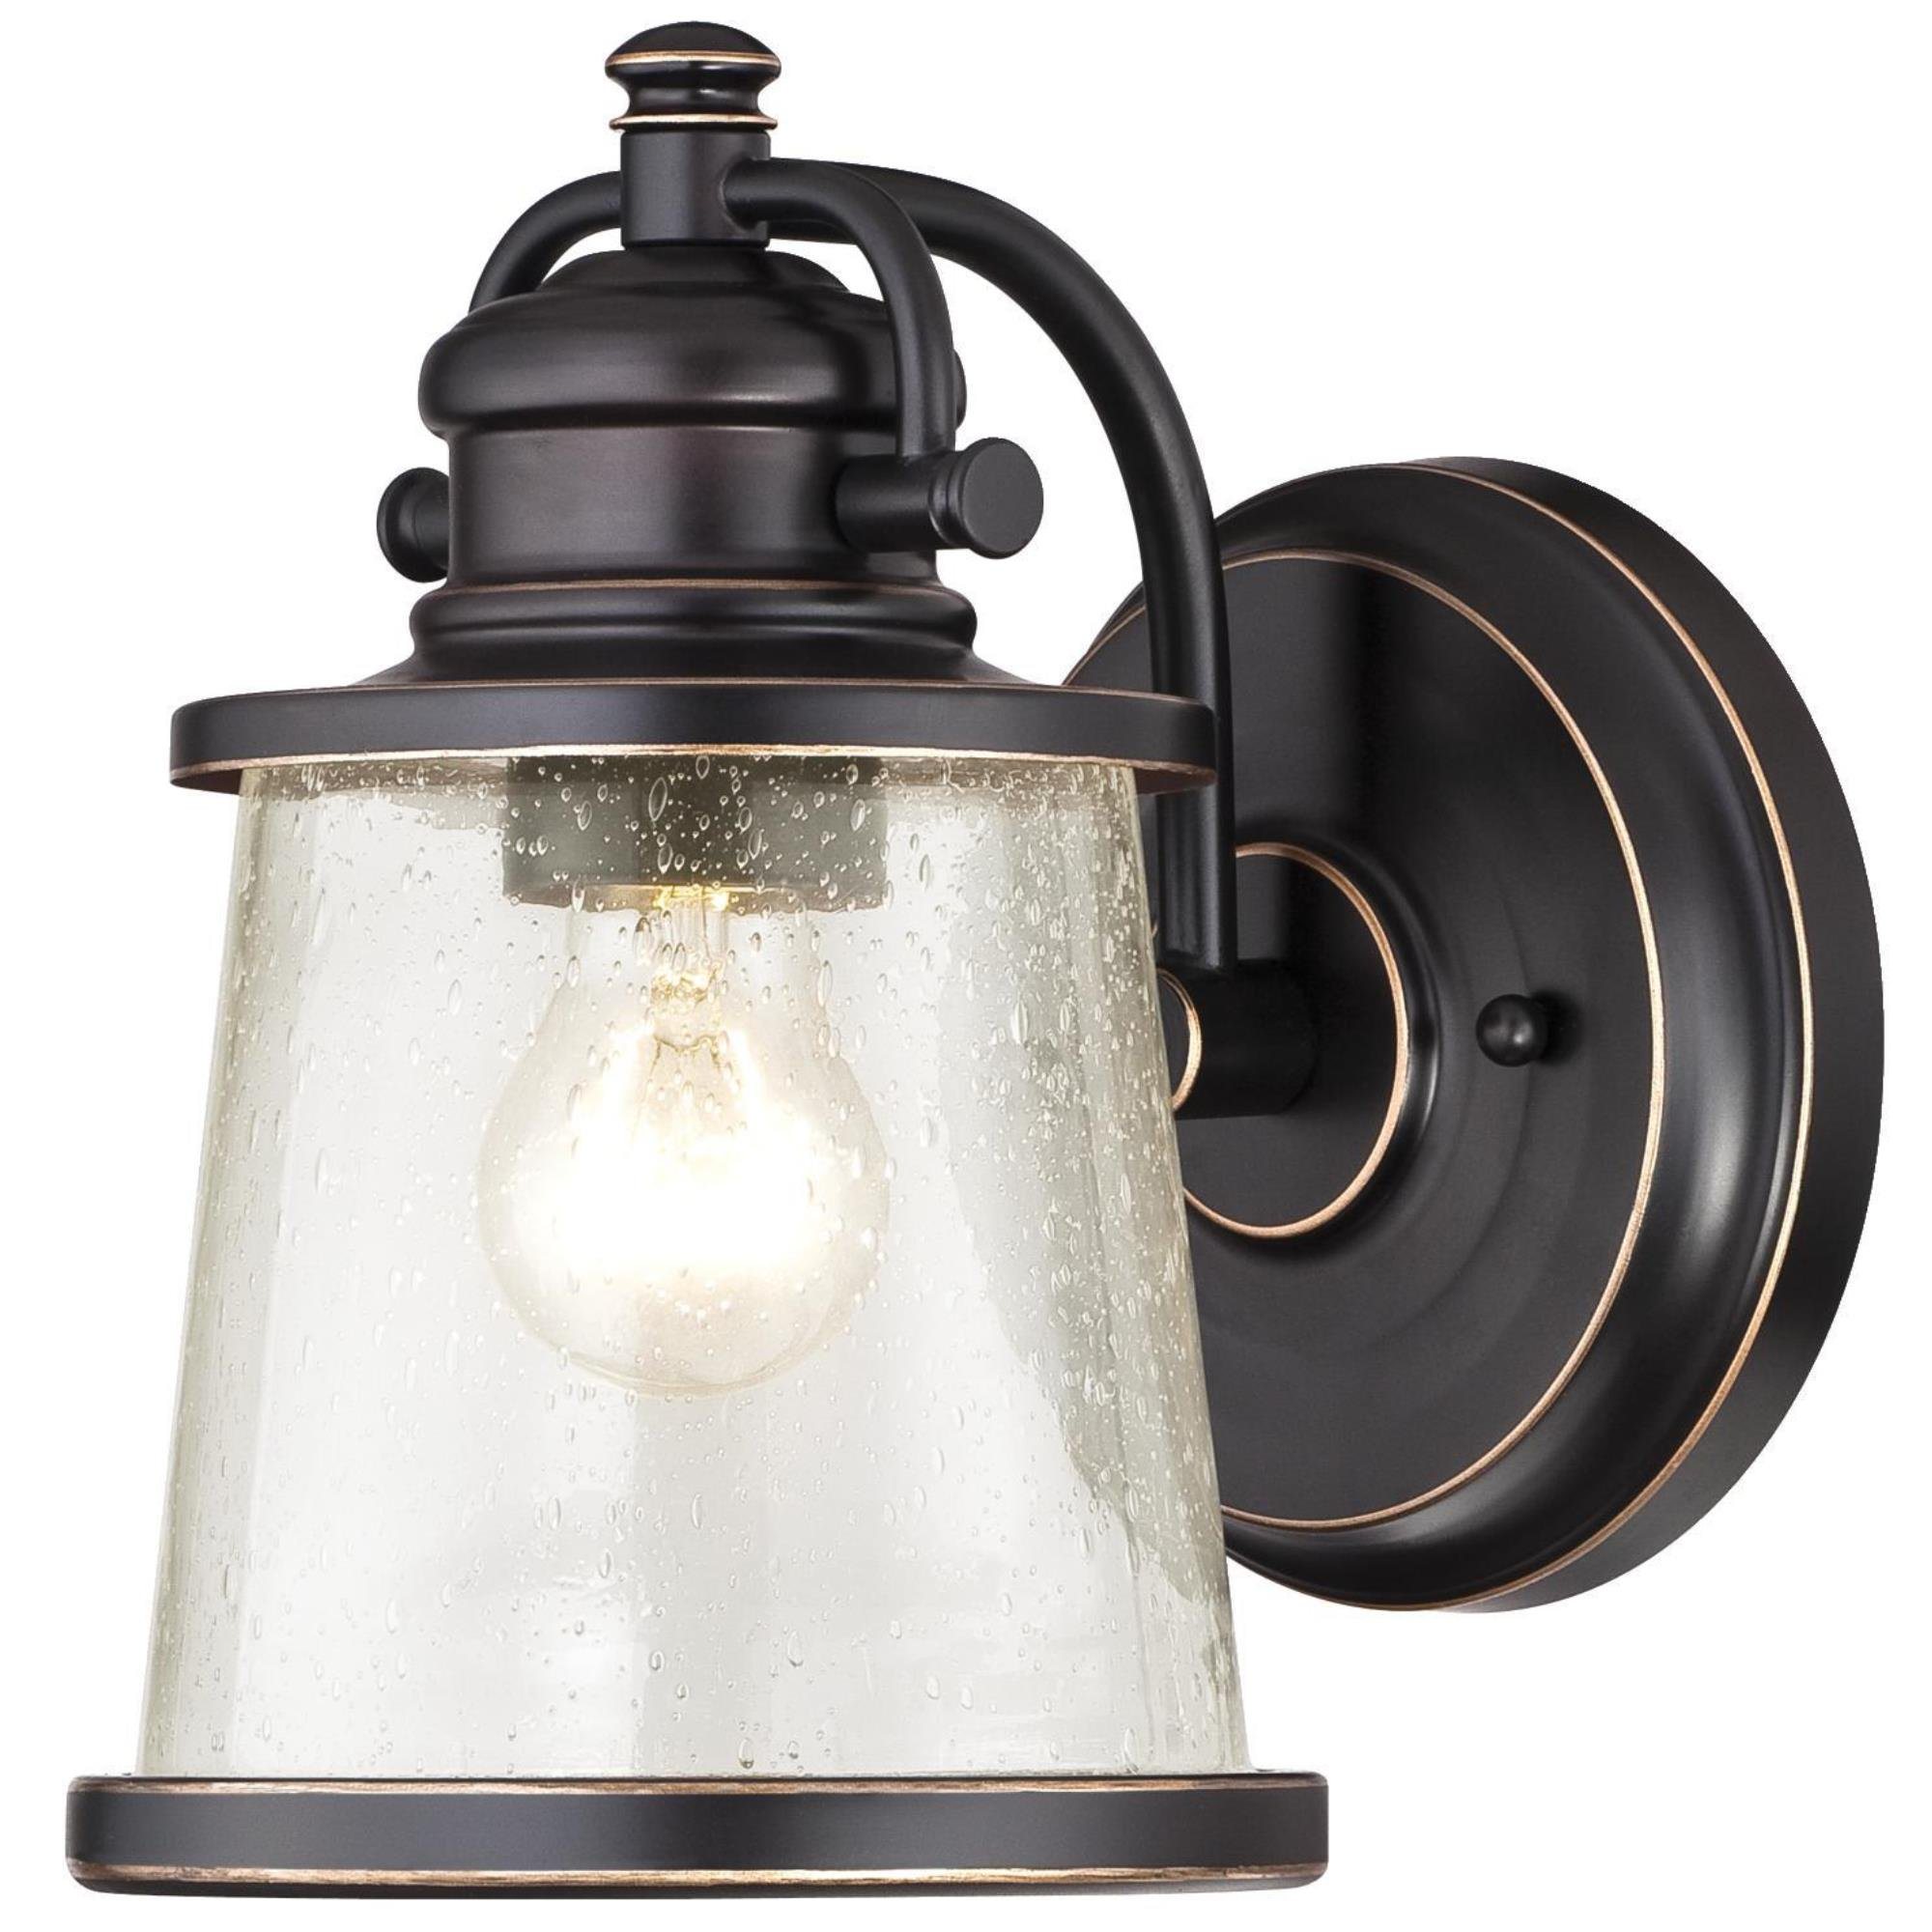 Westinghouse 6204000 Emma Jane 1 Light Outdoor Wall Lantern, Amber Bronze by Westinghouse